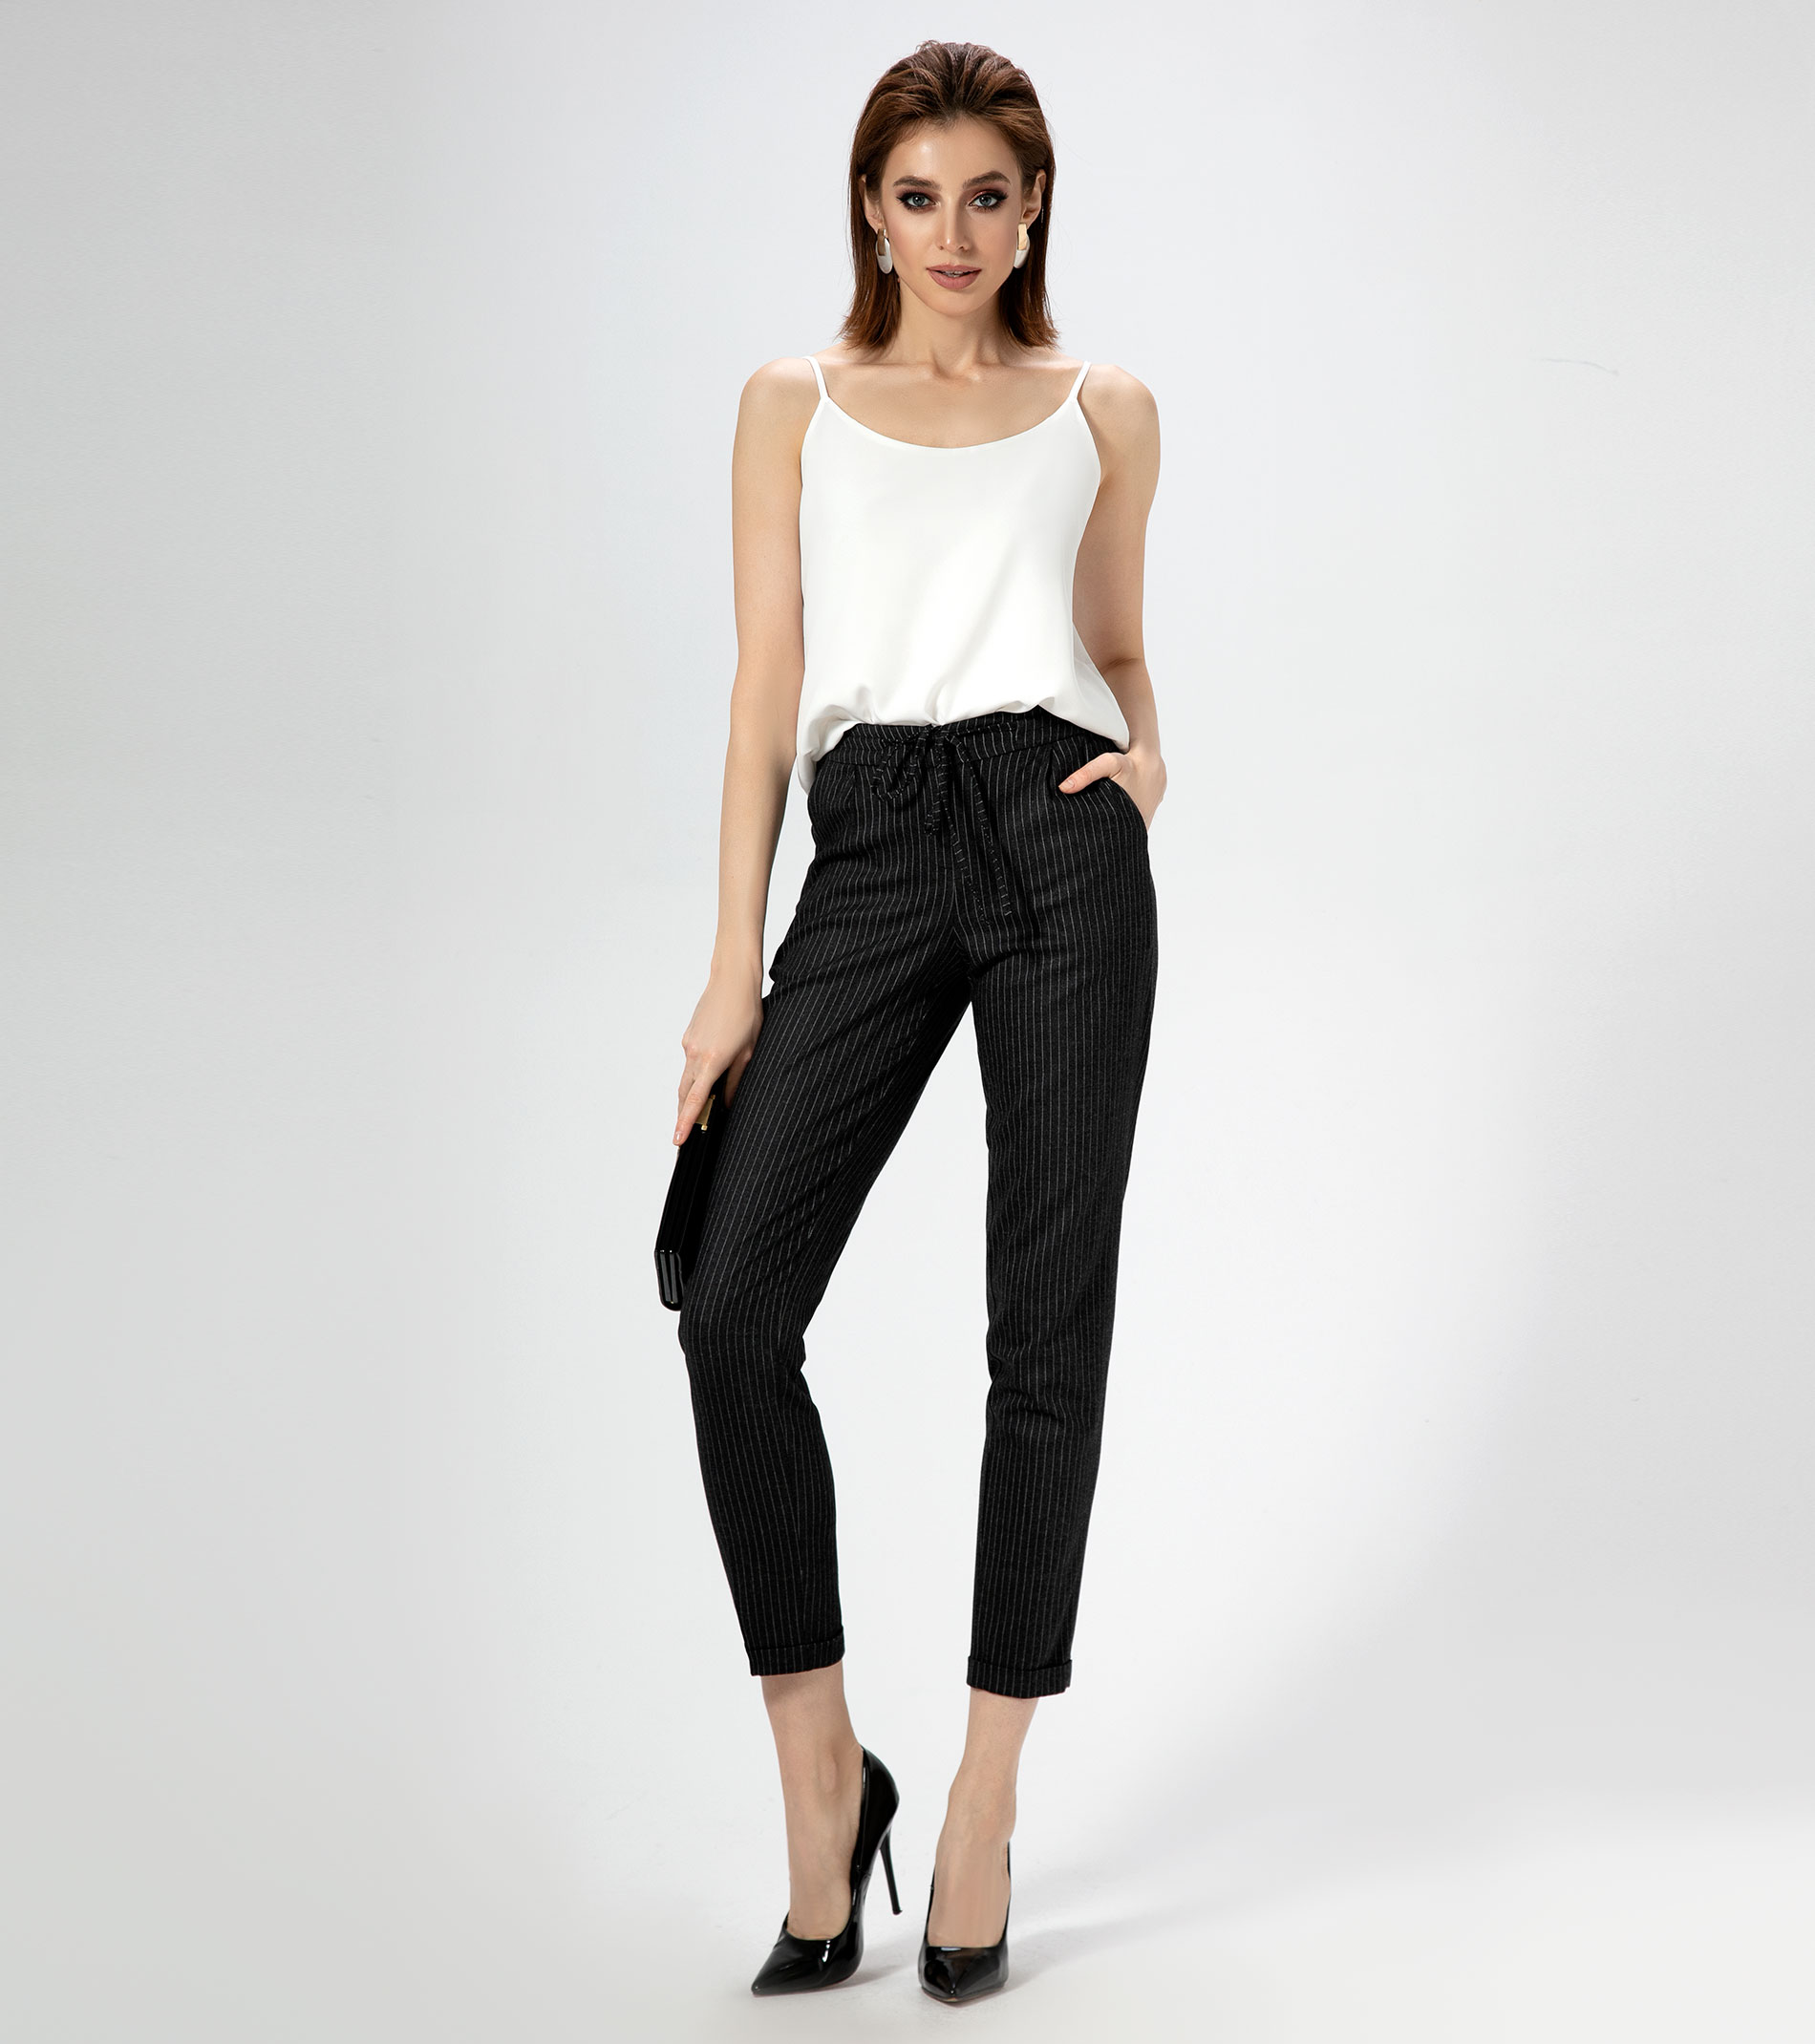 Women's trousers 458767